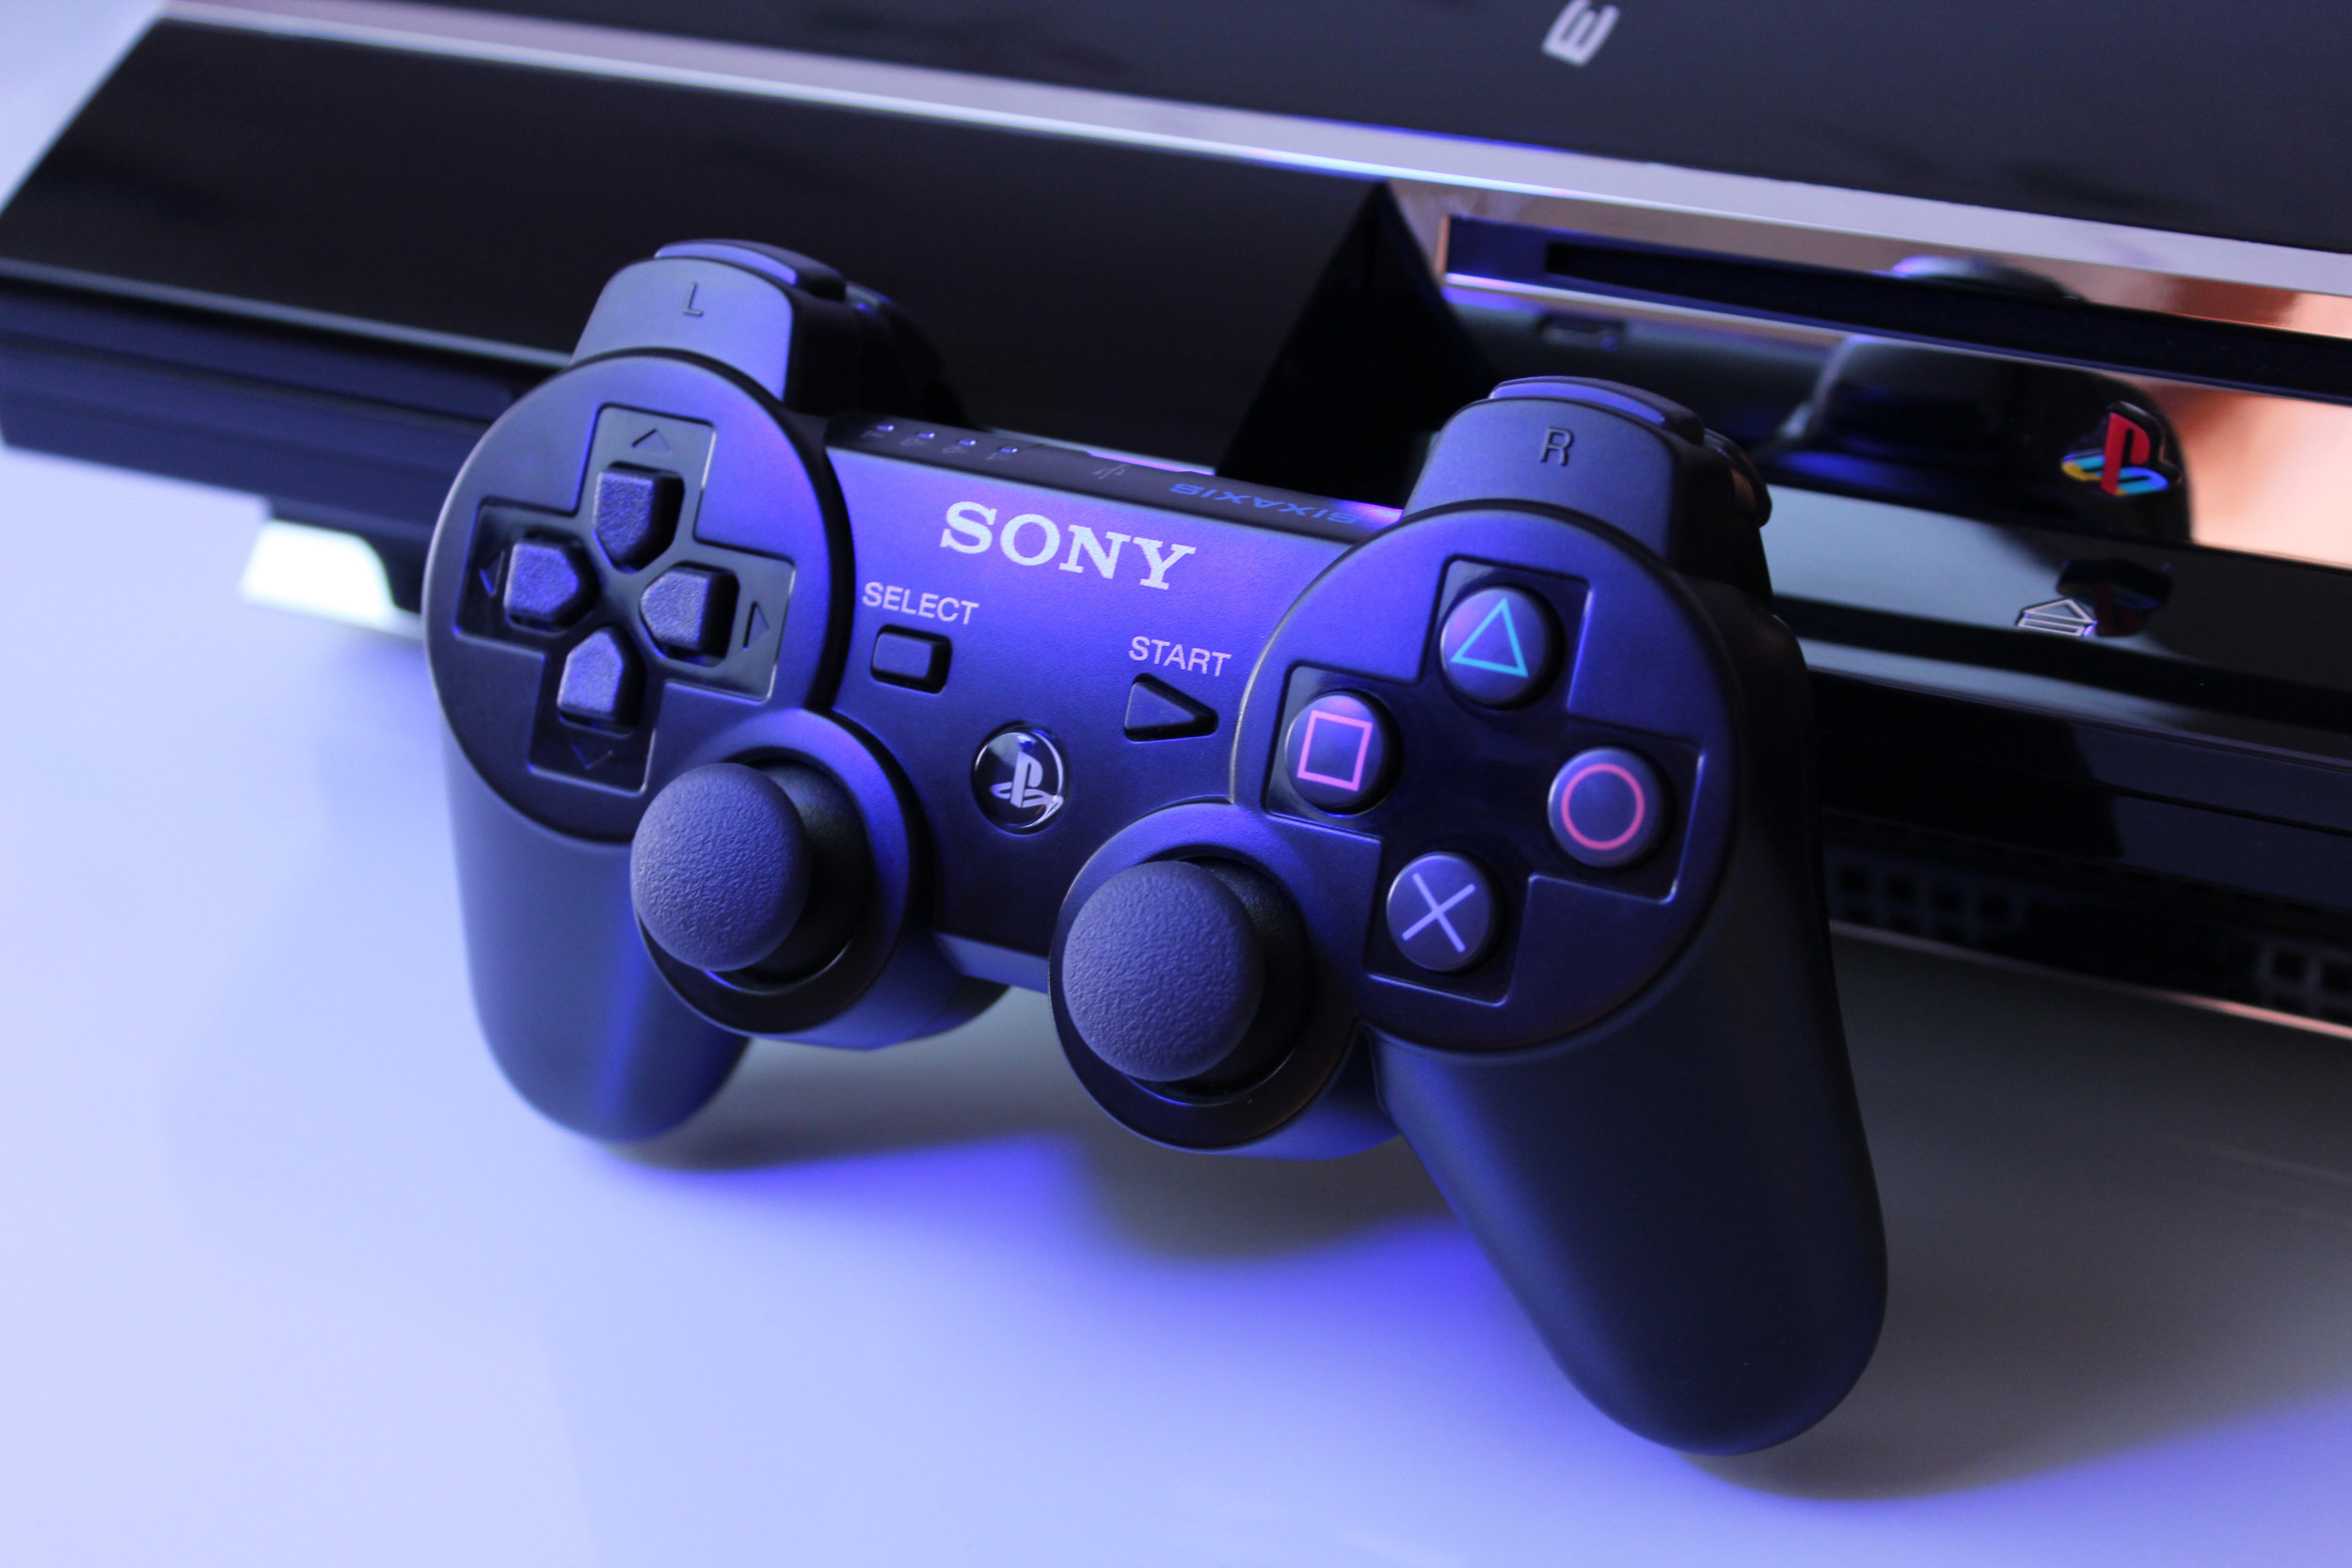 The sales of the PS3 were severely impacted by the Great Sony Hack of 2011  Photo by  Nikita Kostrykin  on  Unsplash